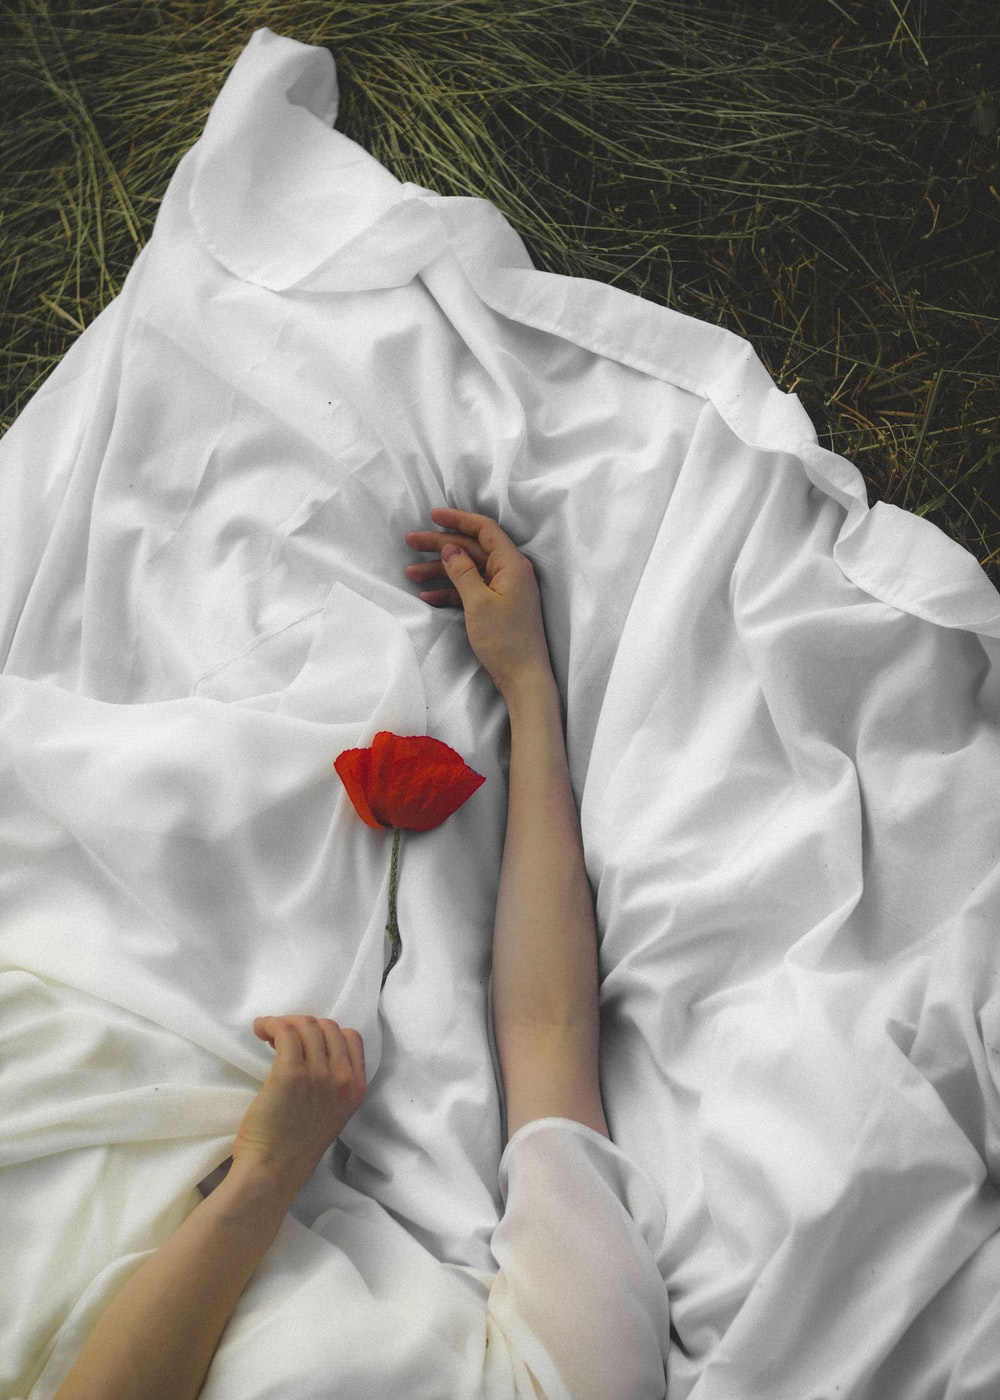 person in white robe holding red rose